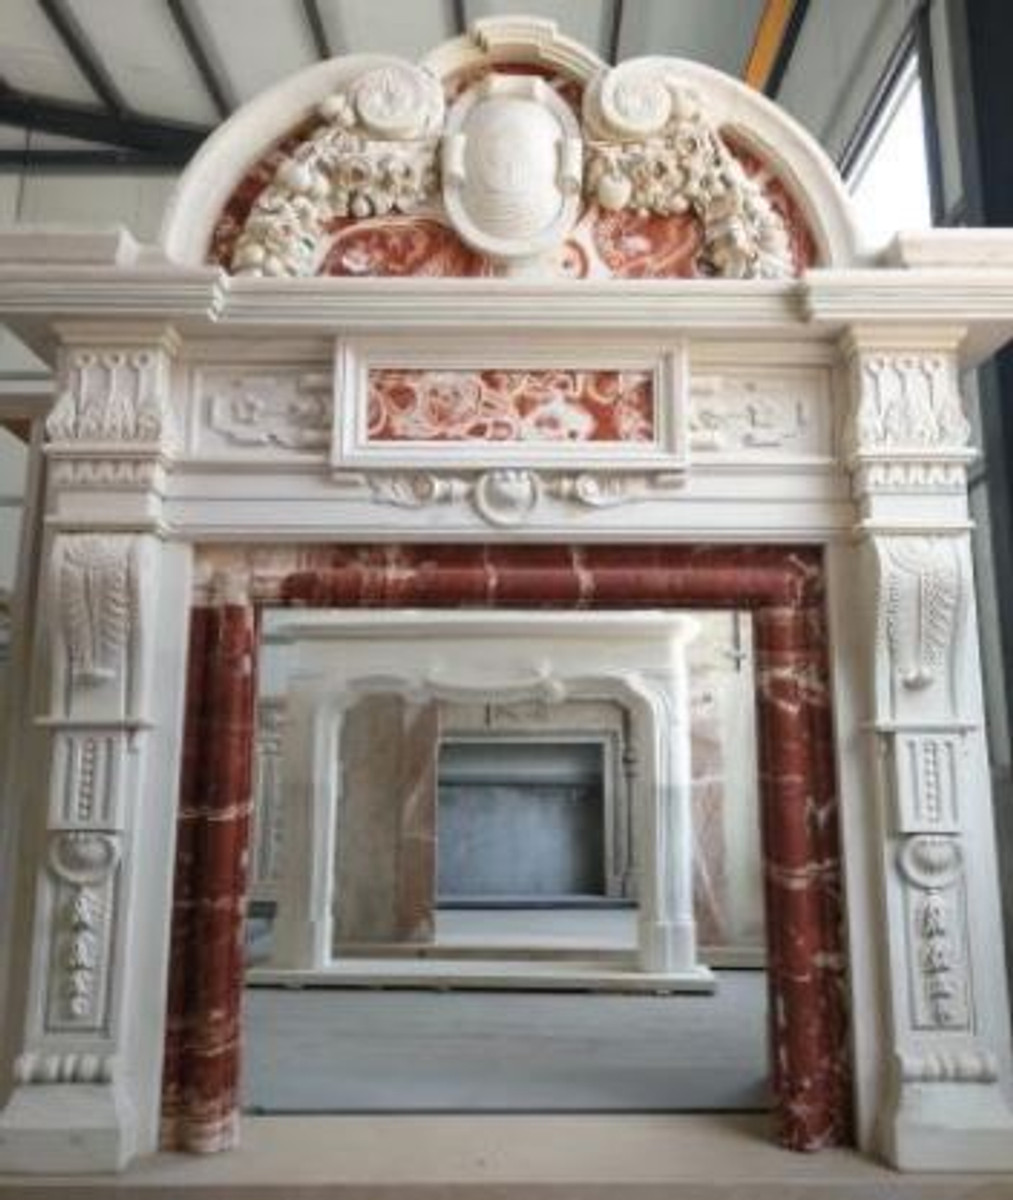 Casa Padrino Luxury Baroque Fireplace Surround White Red 208 X 38 X H 243 Cm Magnificent Fireplace Surround Made Of High Quality Marble Marble Furniture In Baroque Style